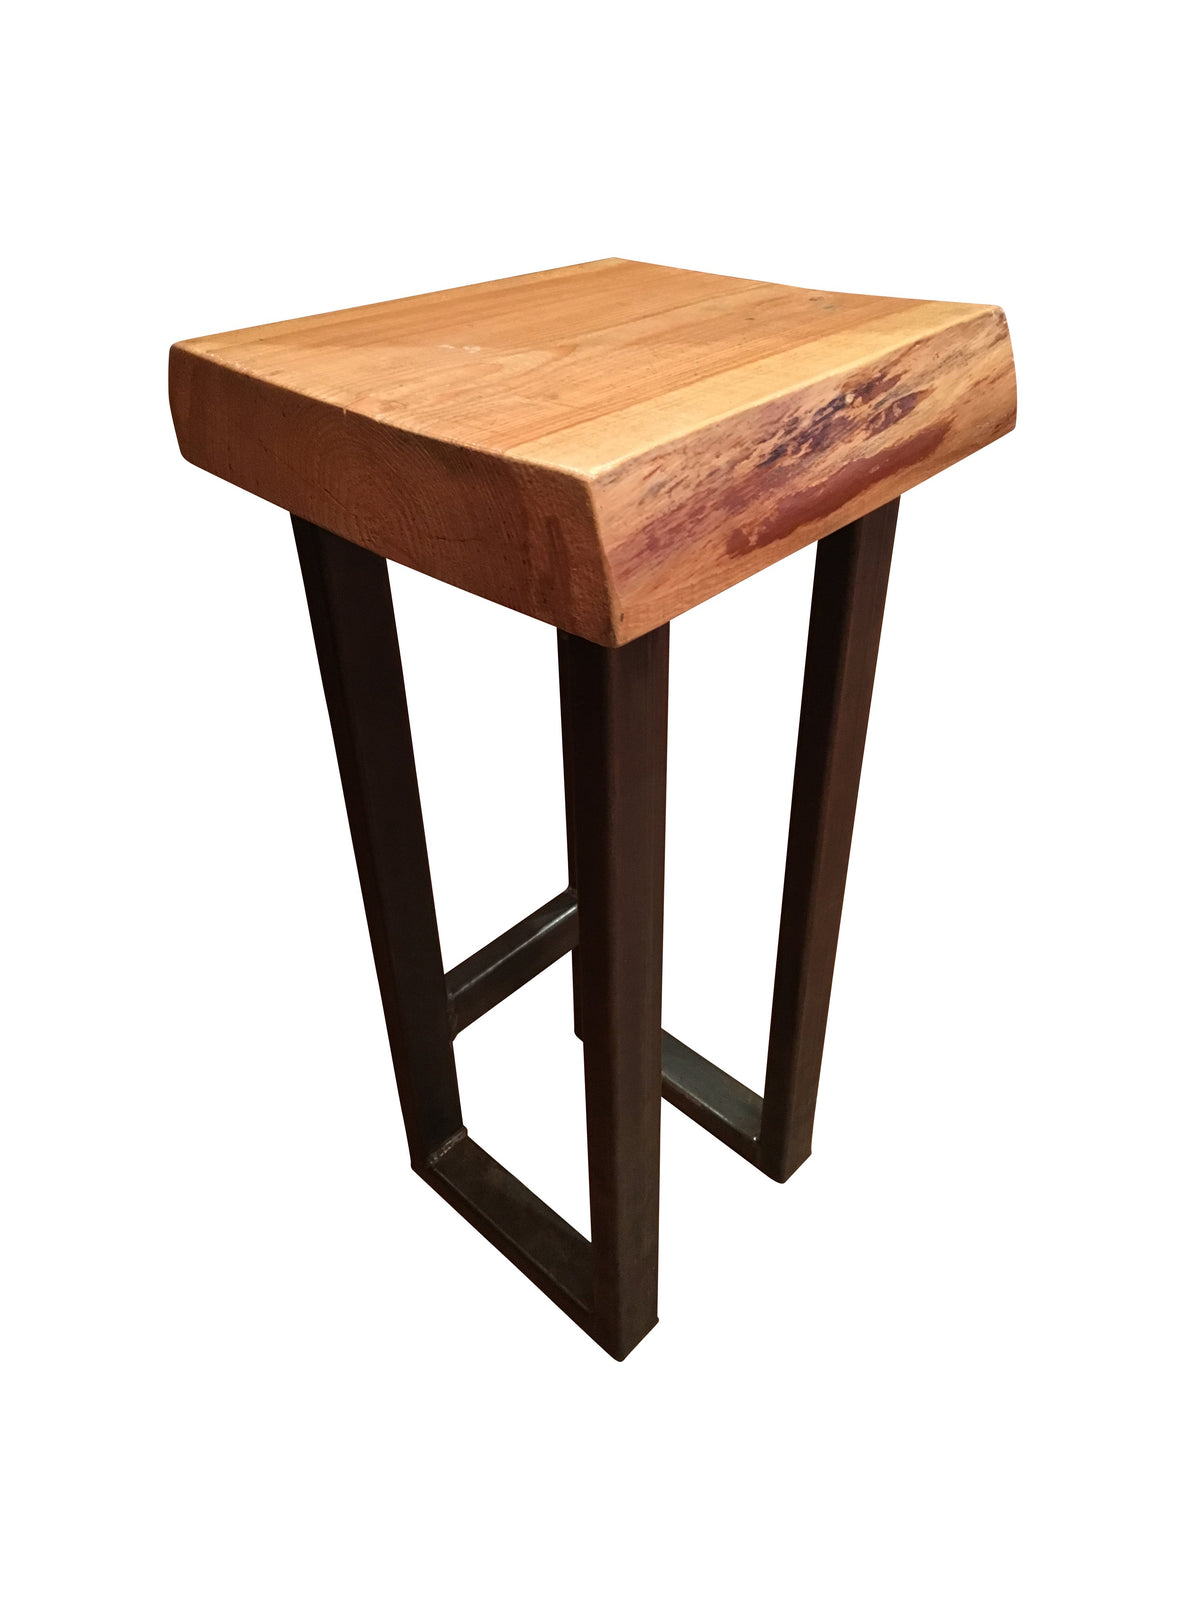 Handmade Industrial High Stool-Spitnsawdust-Contract Furniture Store